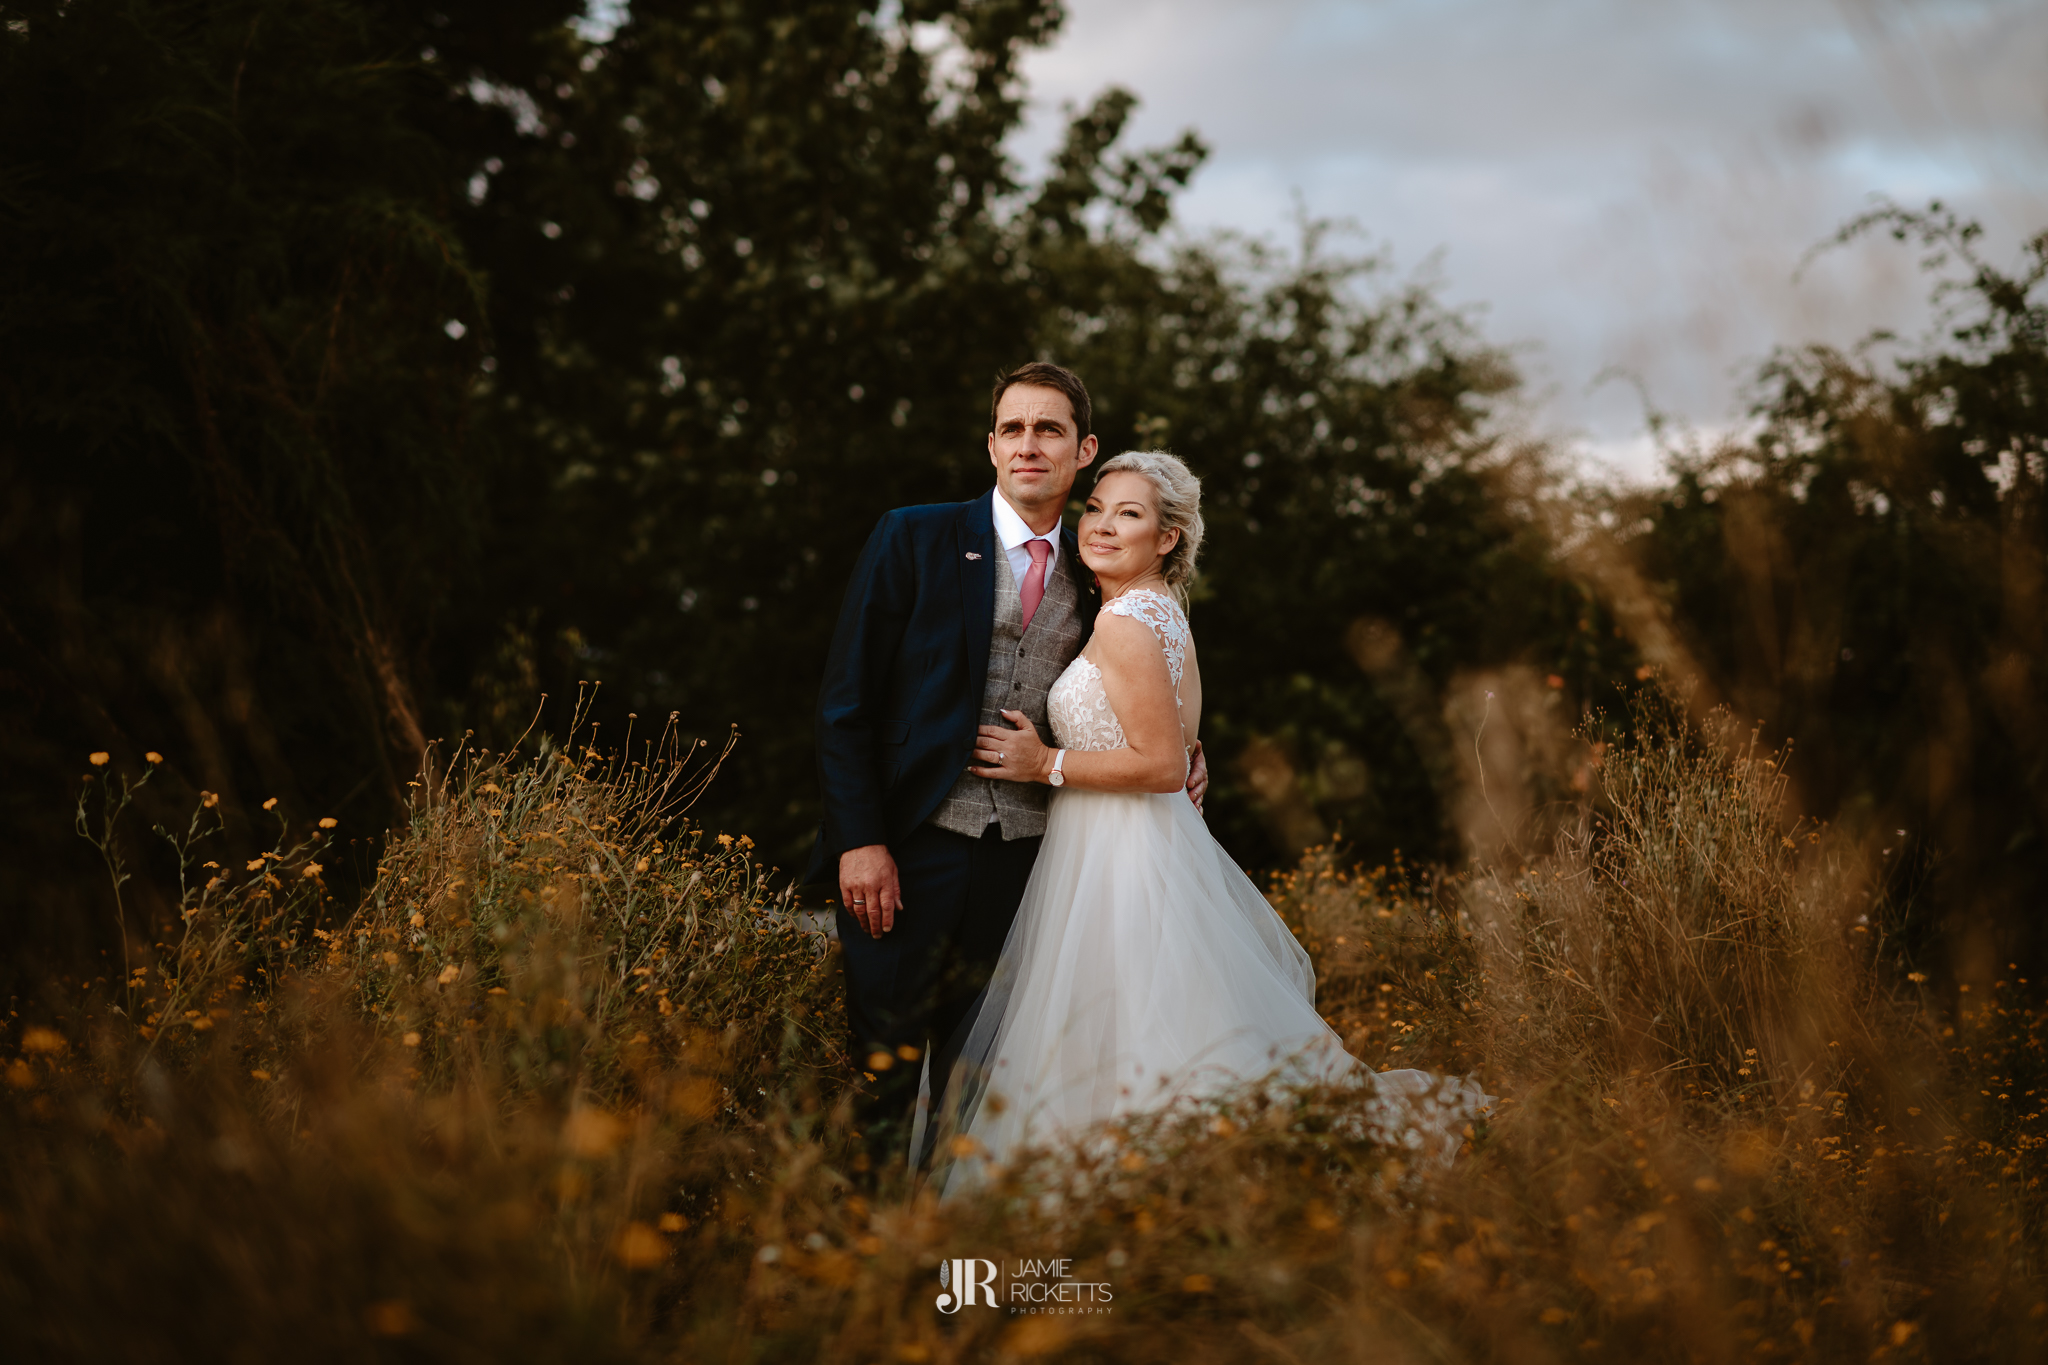 Wroxeter-Hotel-Wedding-Photography-In-Shropshire-By-Shropshire-Wedding-Photographer-Jamie-Ricketts-198.JPG